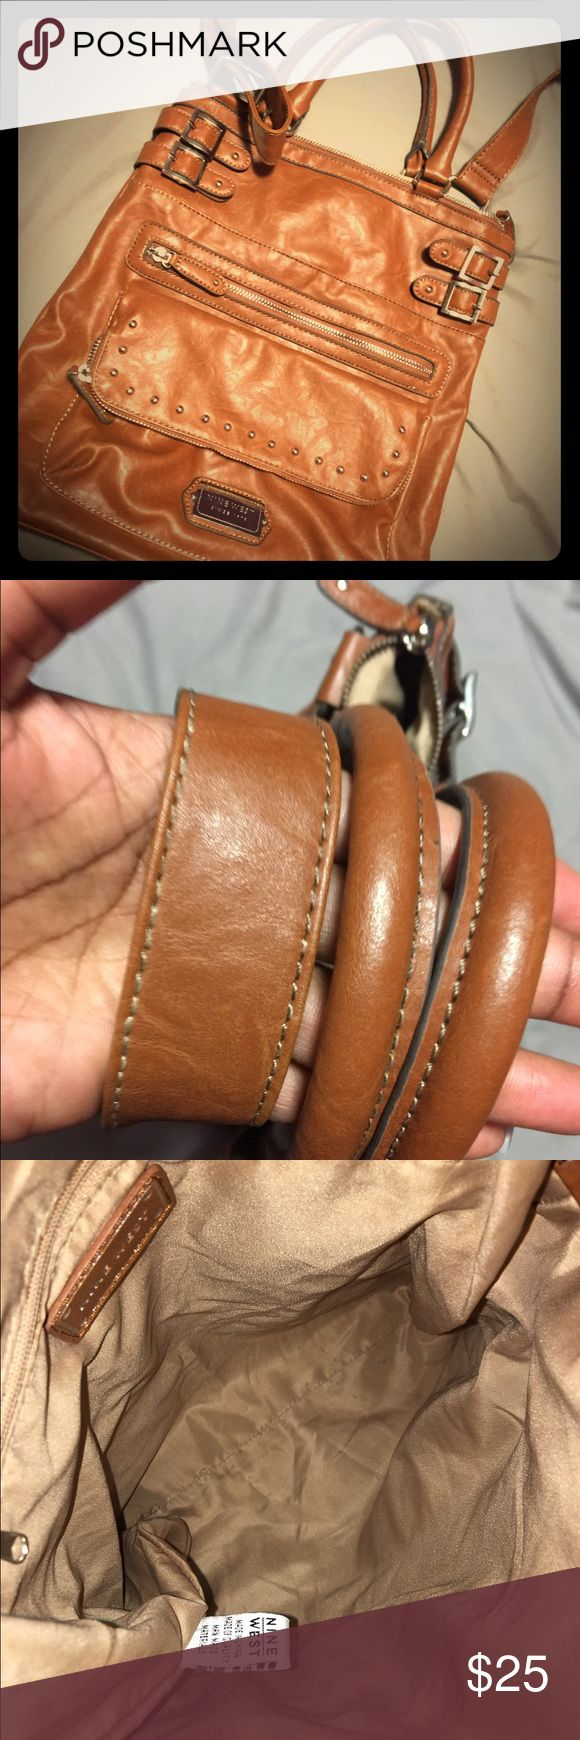 Nine West Purse Cognac colored purse with silver hardware. No imperfections Nine West Bags